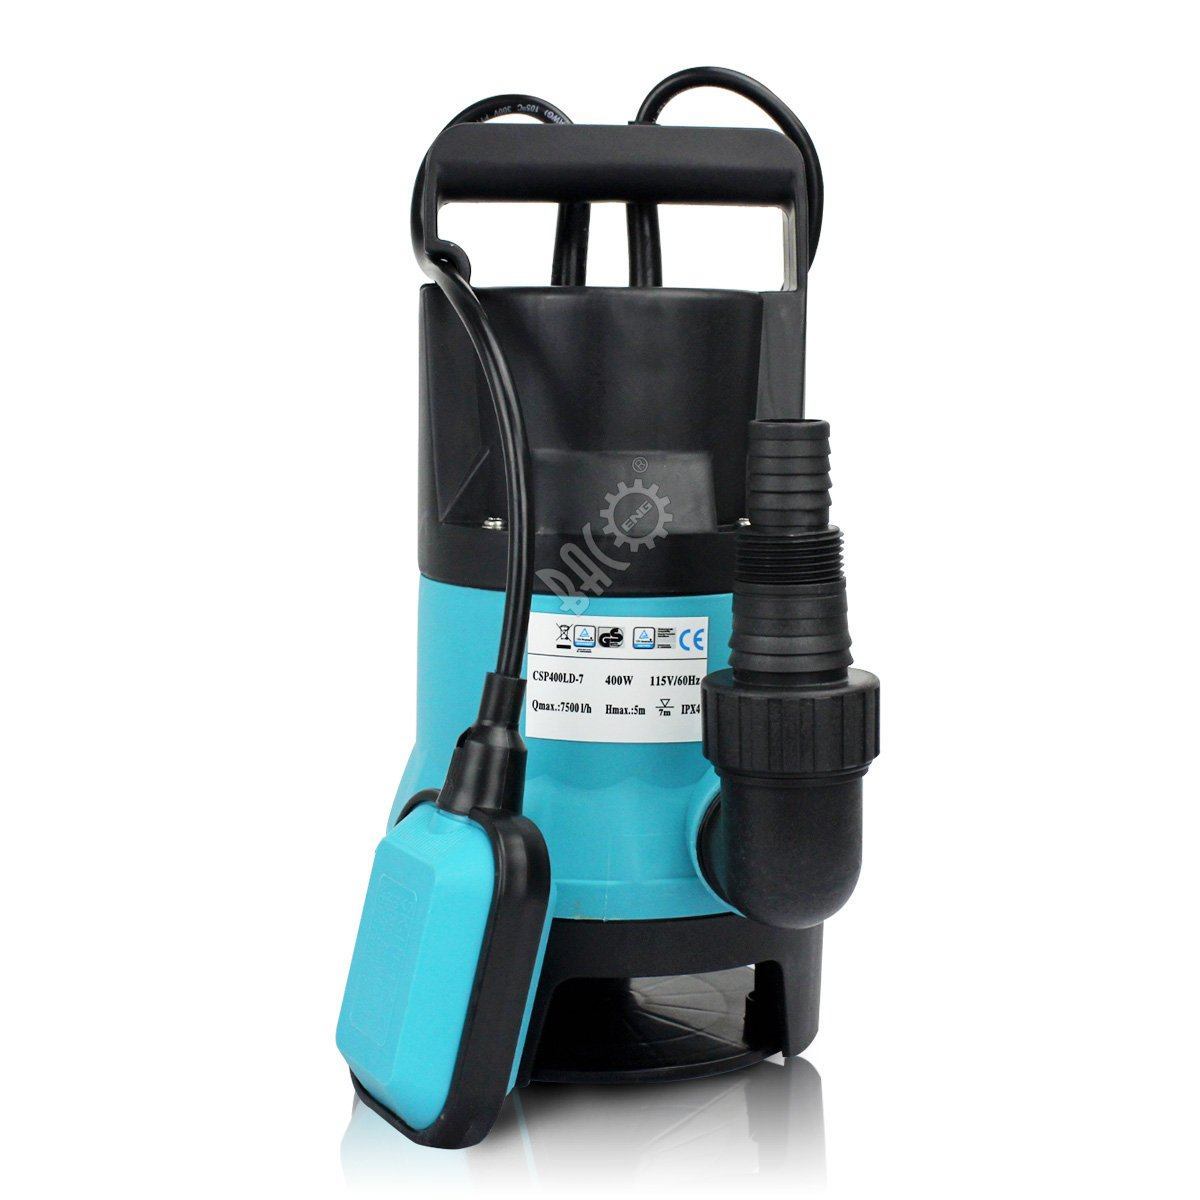 BACOENG 1/2HP Clean/Dirty Water Submersible Sump Pump 2000GPH w/ 33FT Cable